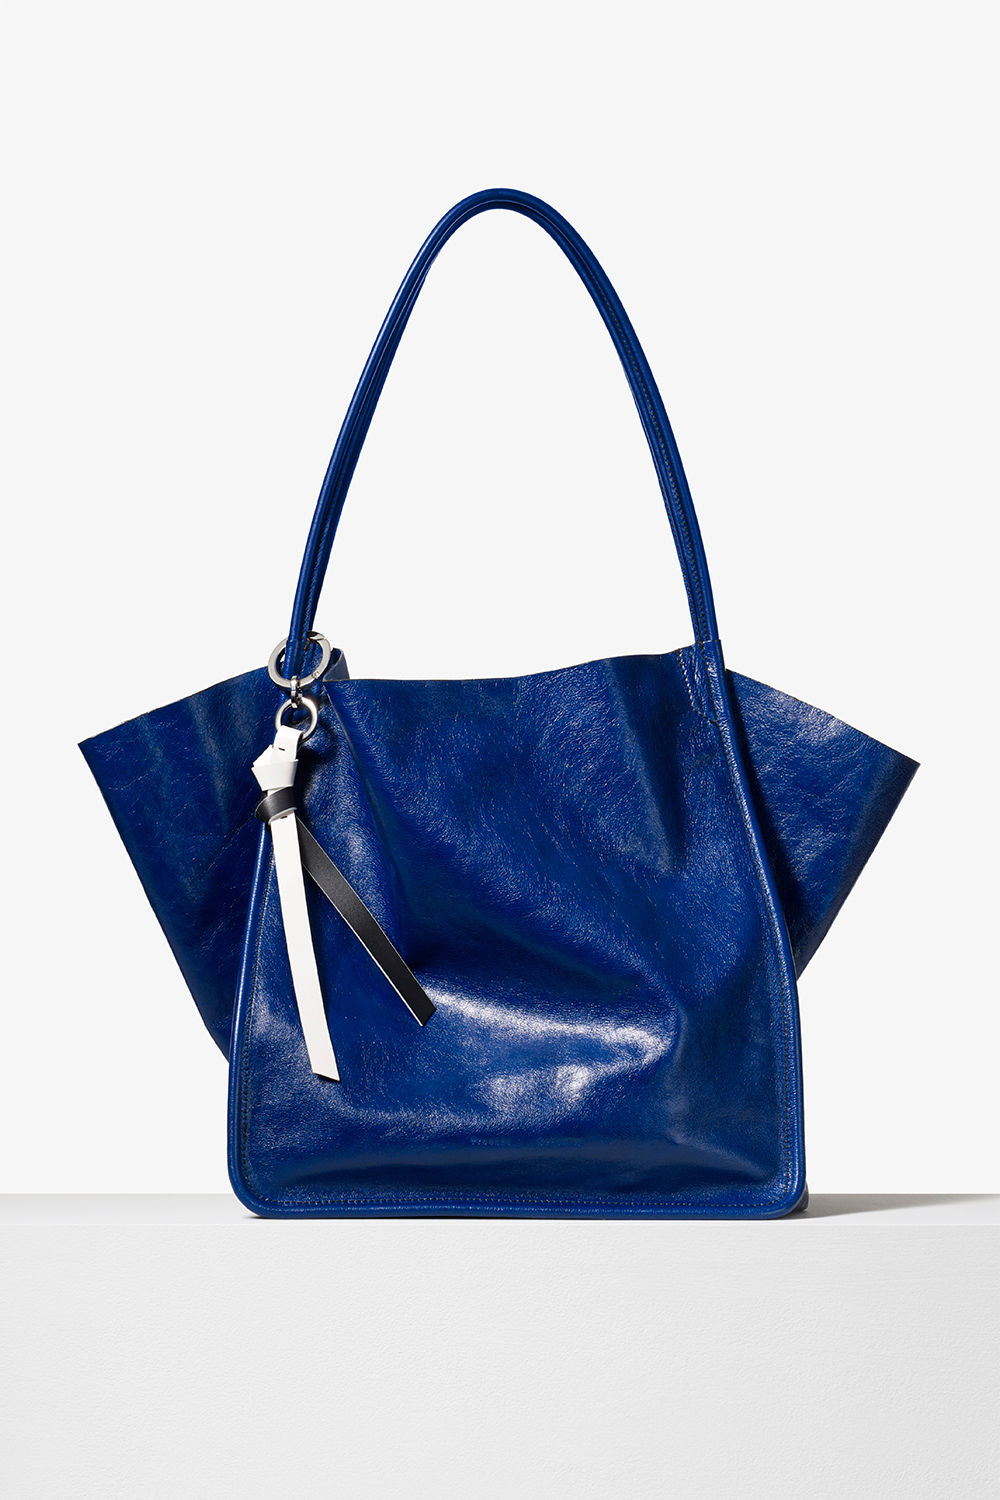 proenza schouler pre fall 2017 lapis vernicetta extra large tote bag